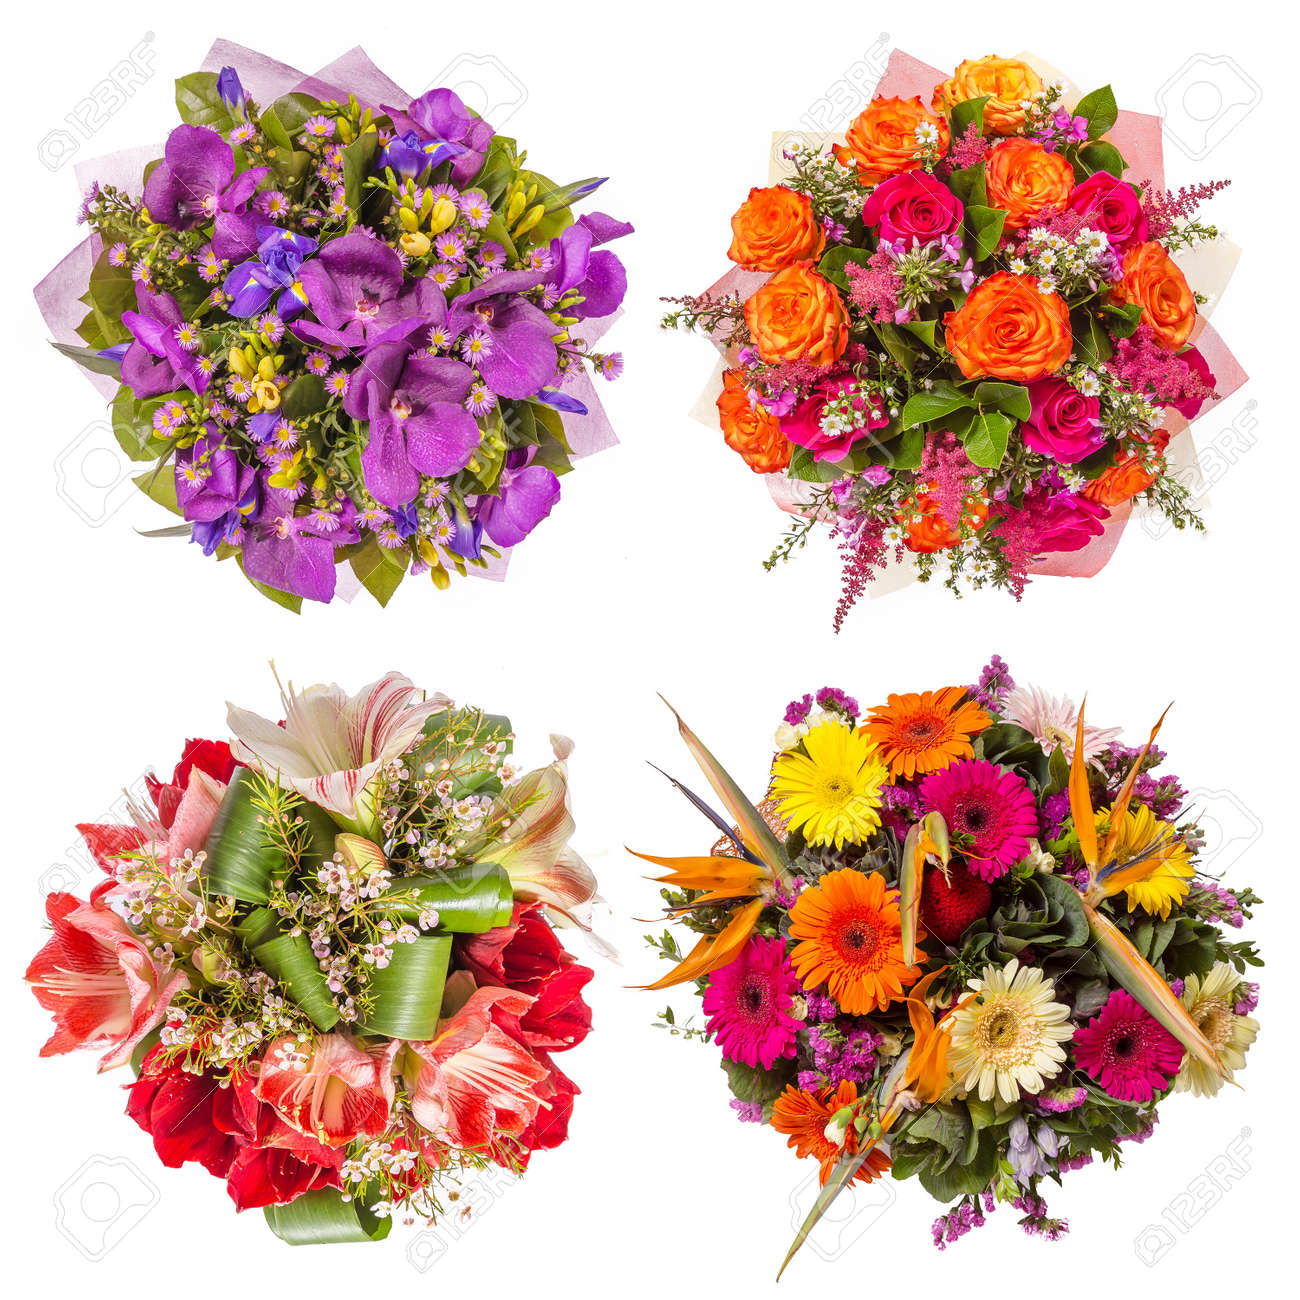 Top View Of Four Colorful Flower Bouquets. Stock Photo, Picture And ...